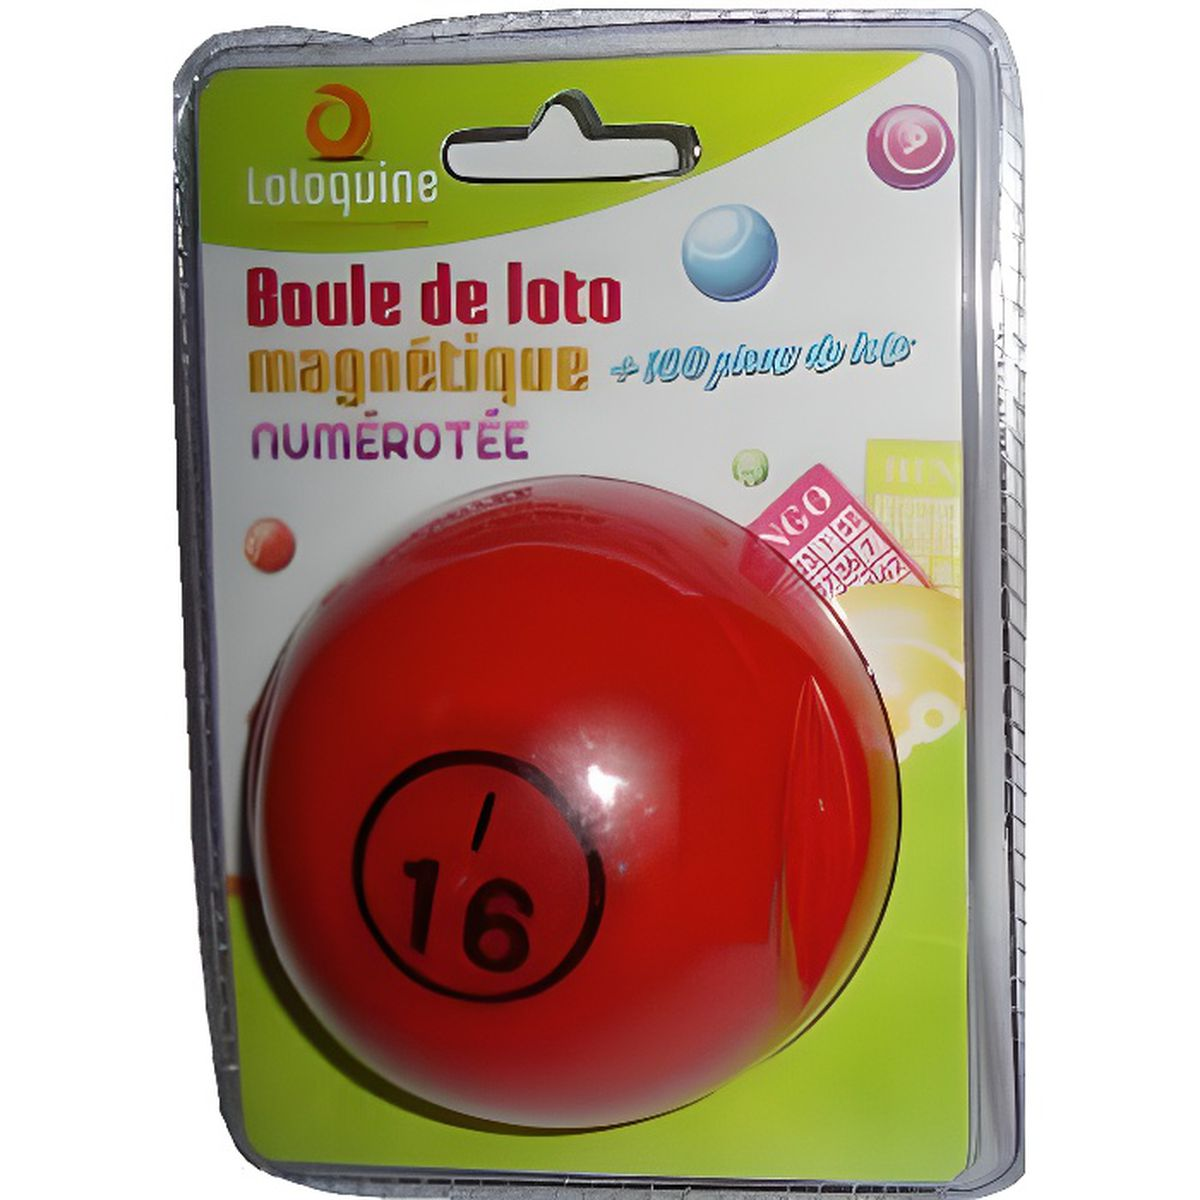 boule de loto magntique numerotee rouge avec 100 pions magnetiques achat vente loto bingo. Black Bedroom Furniture Sets. Home Design Ideas